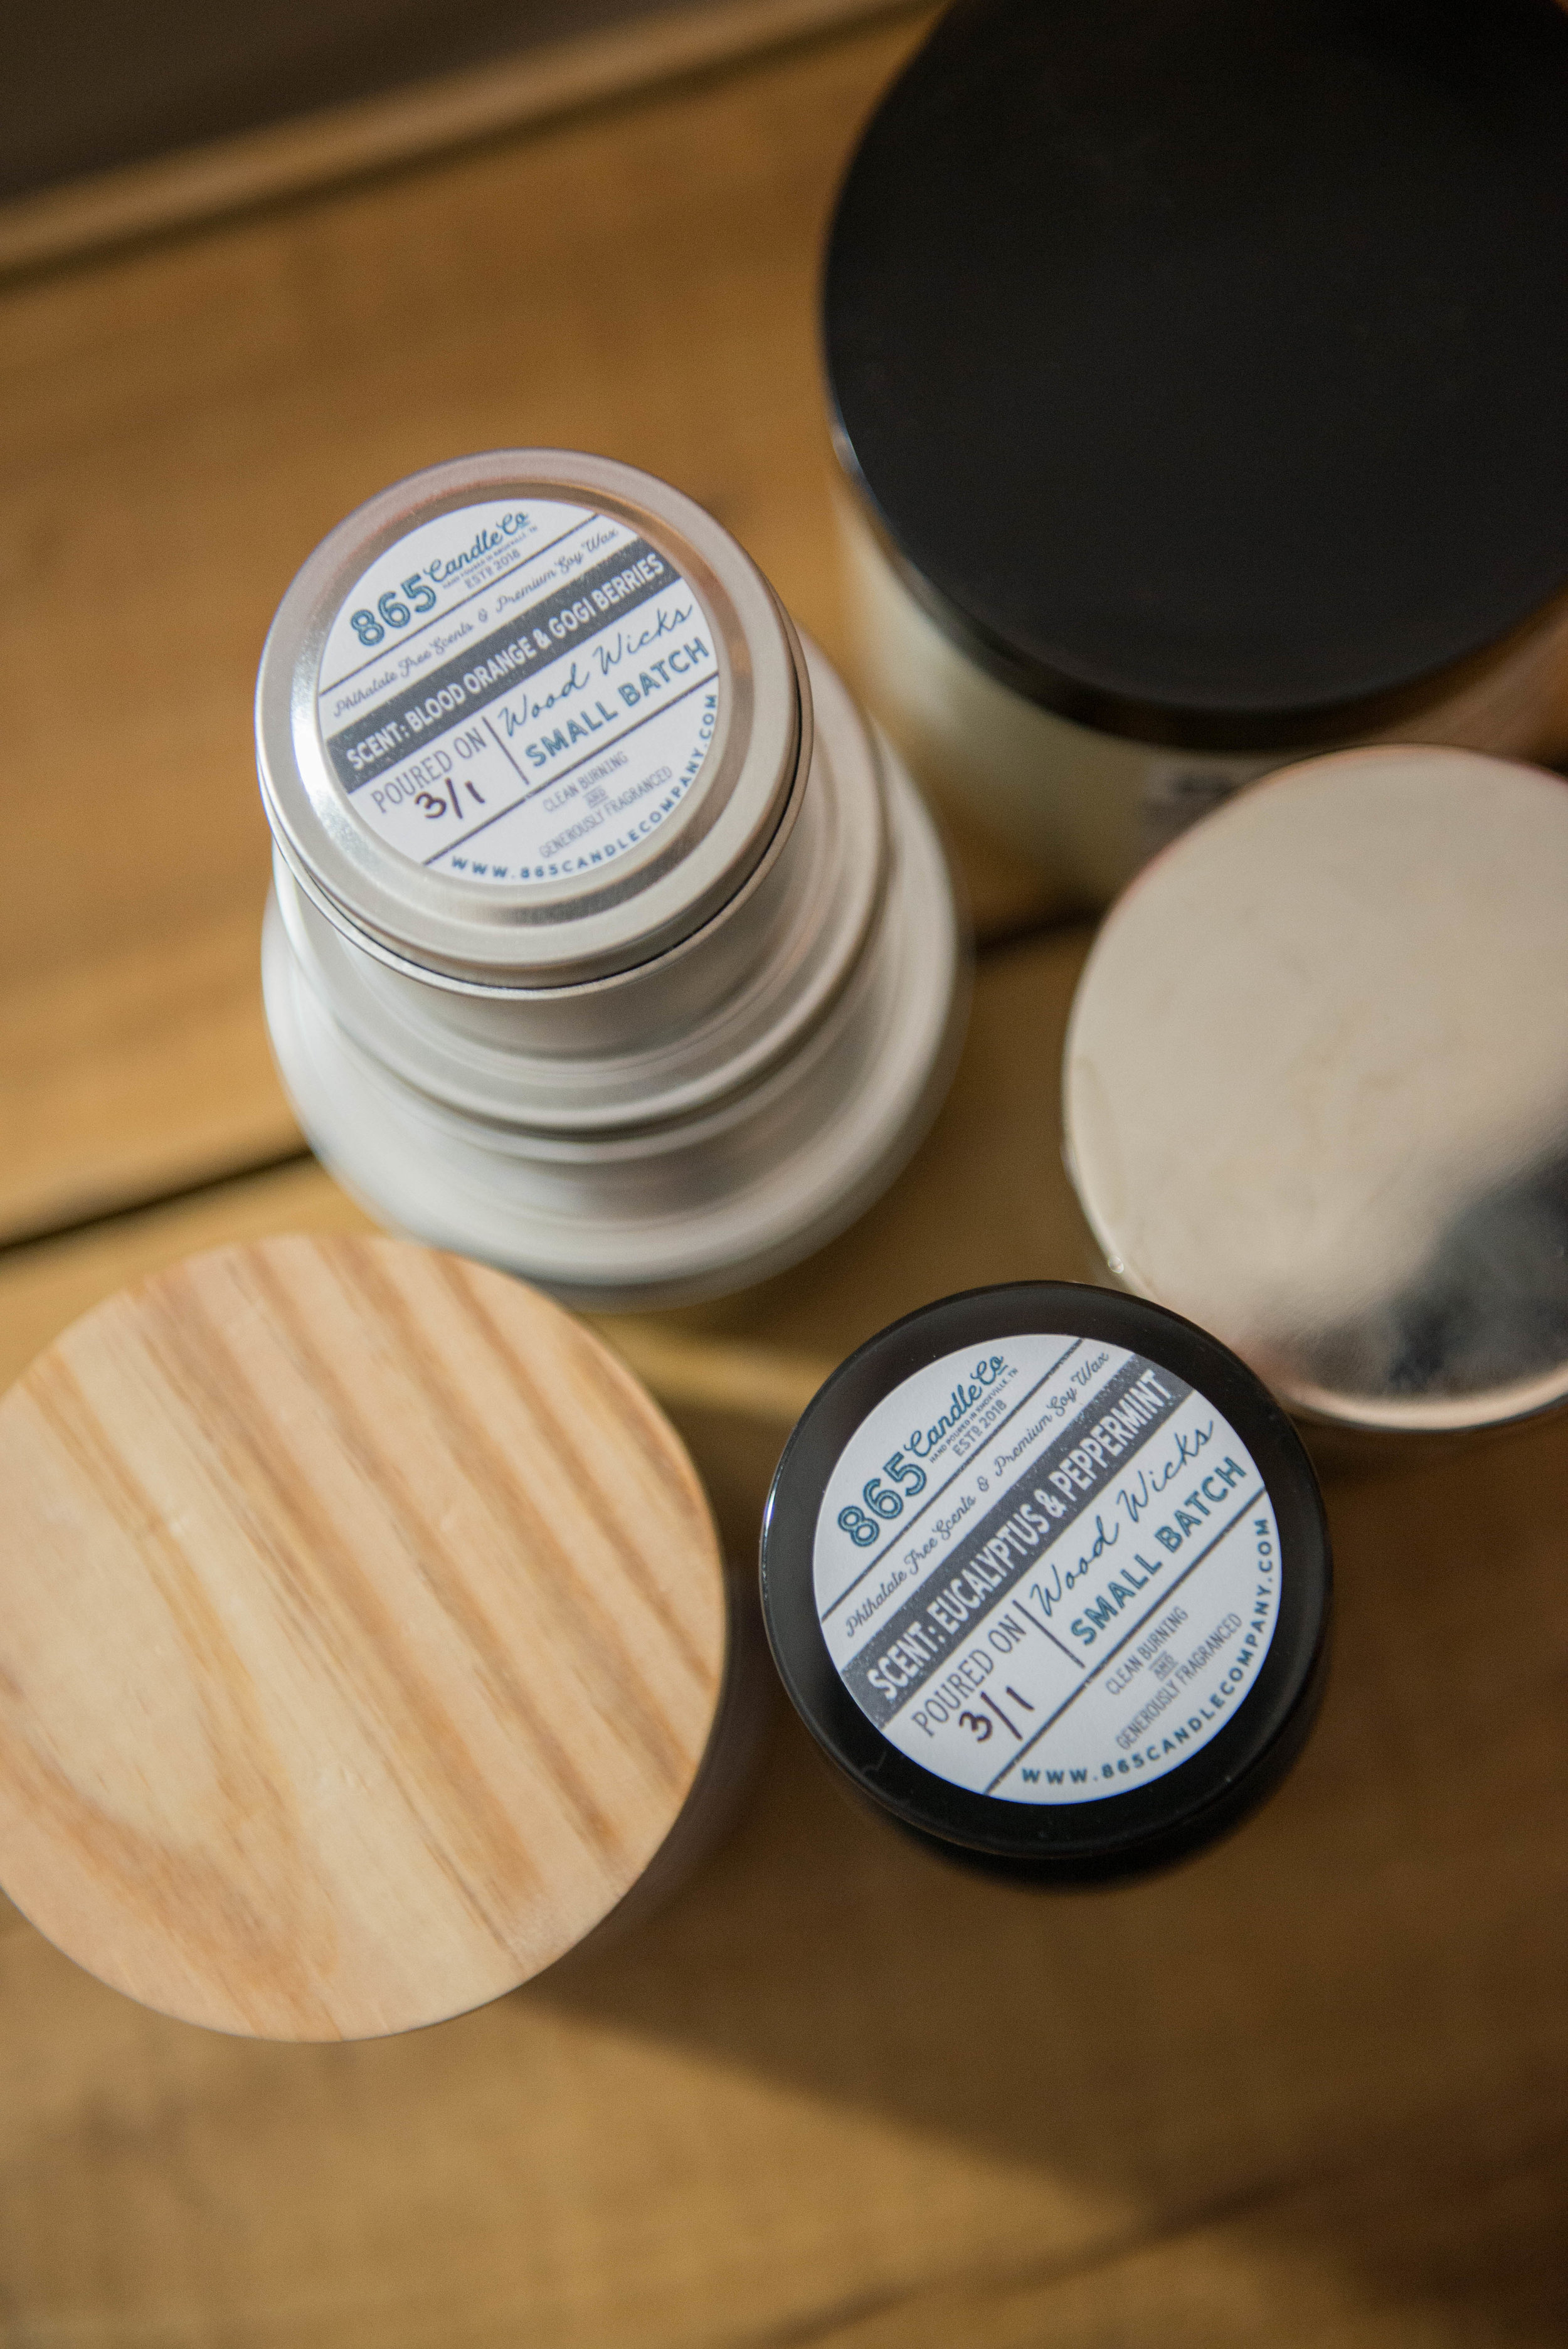 865 Candle Company Labels